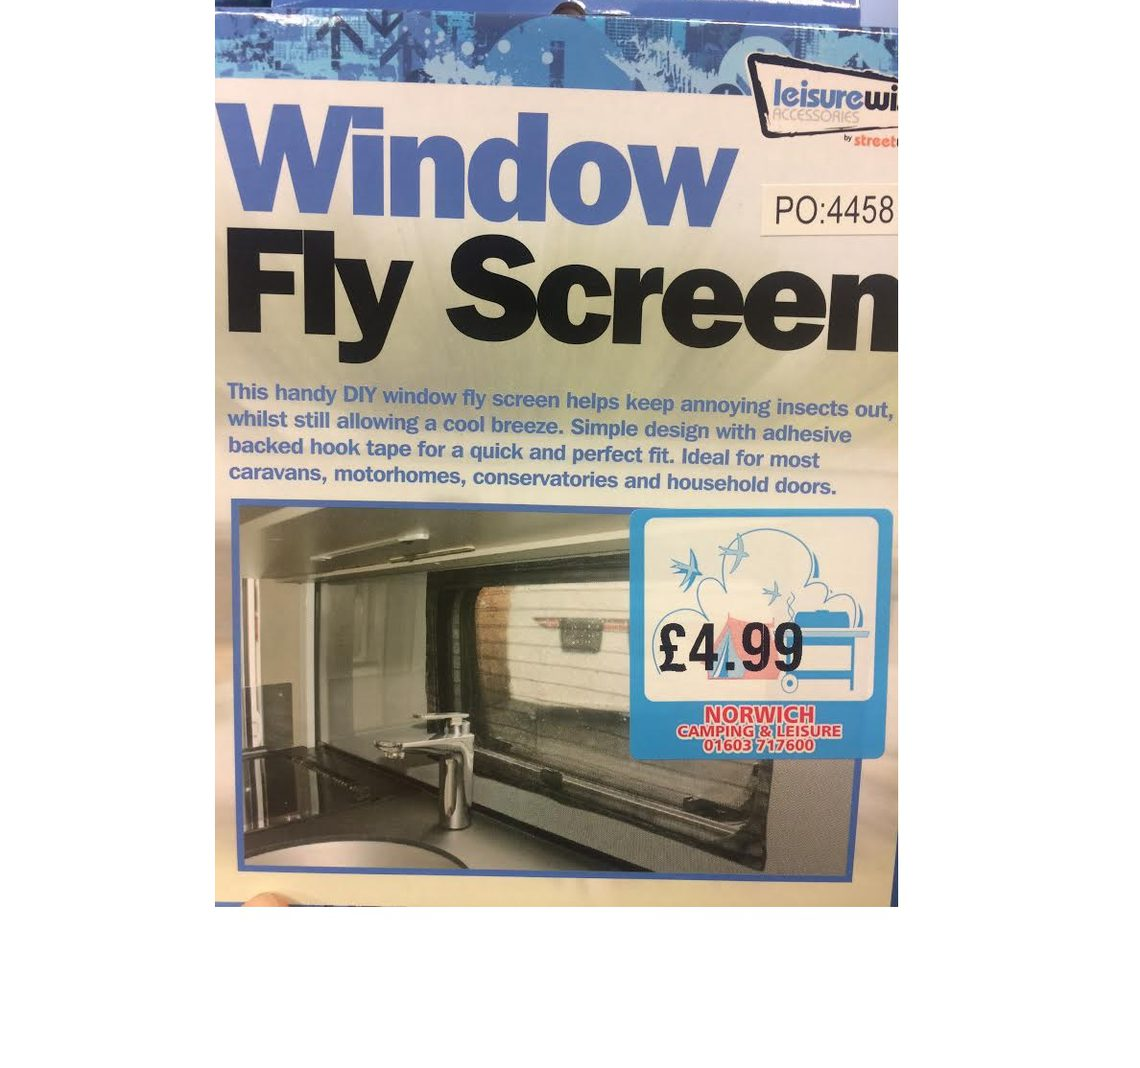 Leisurewize window flyscreen